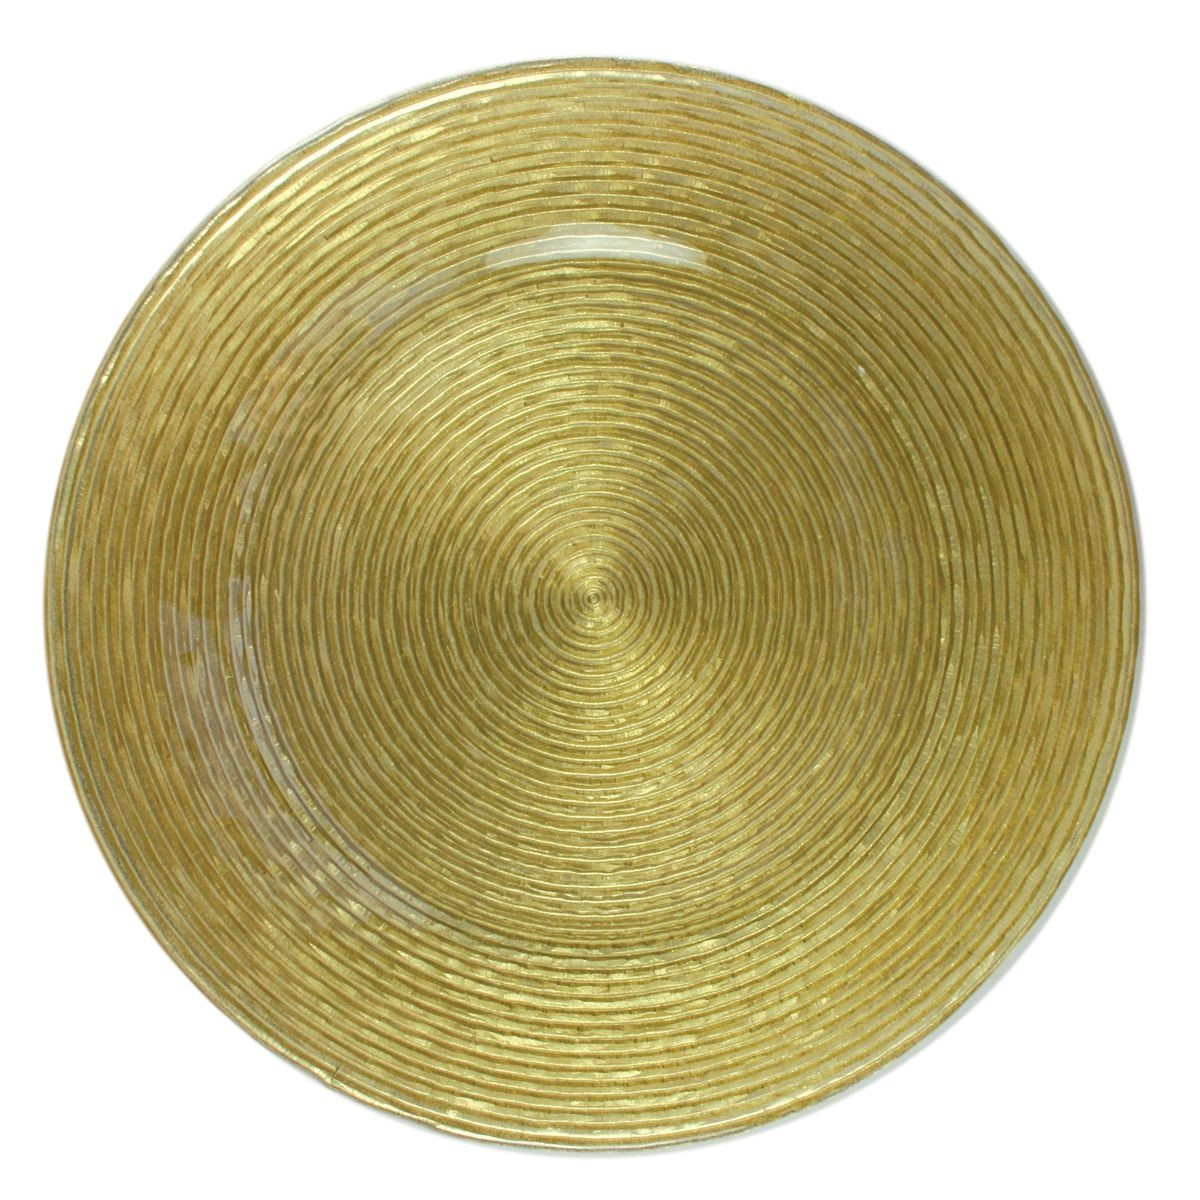 The Jay Companies 1470064 Round Circus Gold Glitter Glass Charger Plate 13""